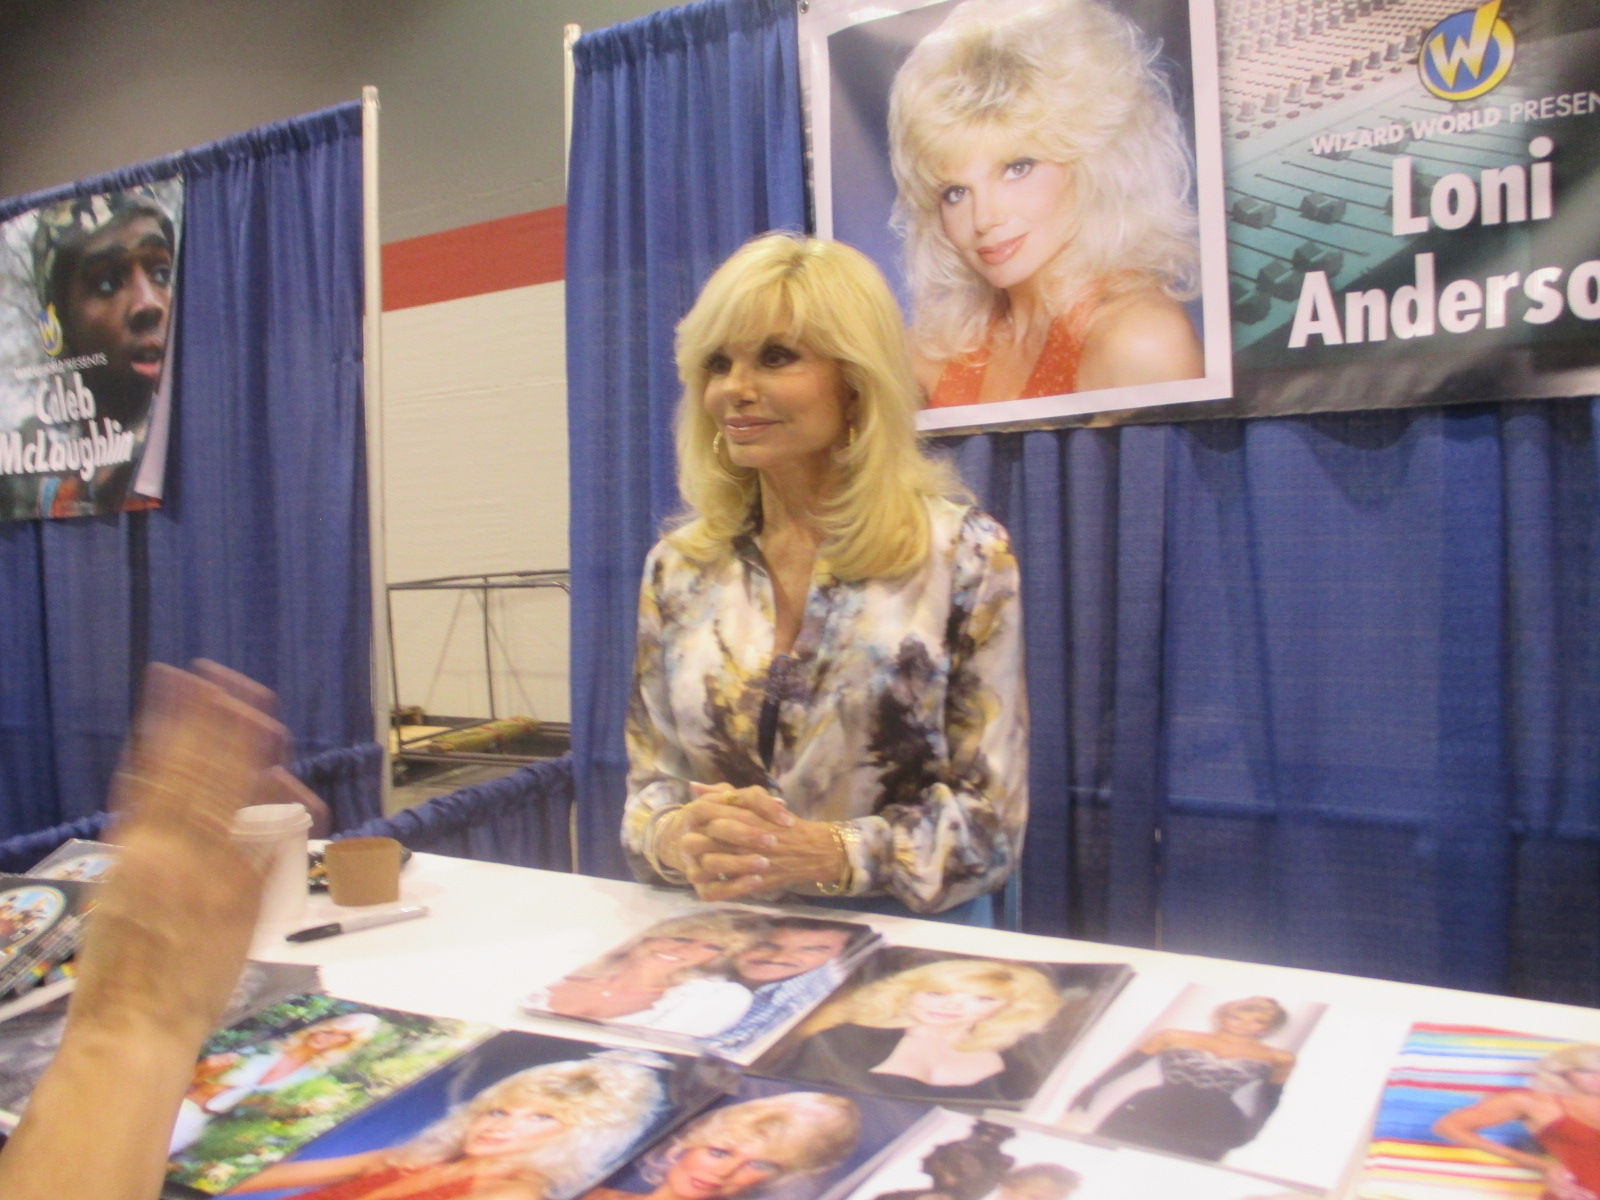 """2017 """"VIP"""" at """"Wizard World Comic Con Chicago""""!! Pictured Is Loni Anderson o"""